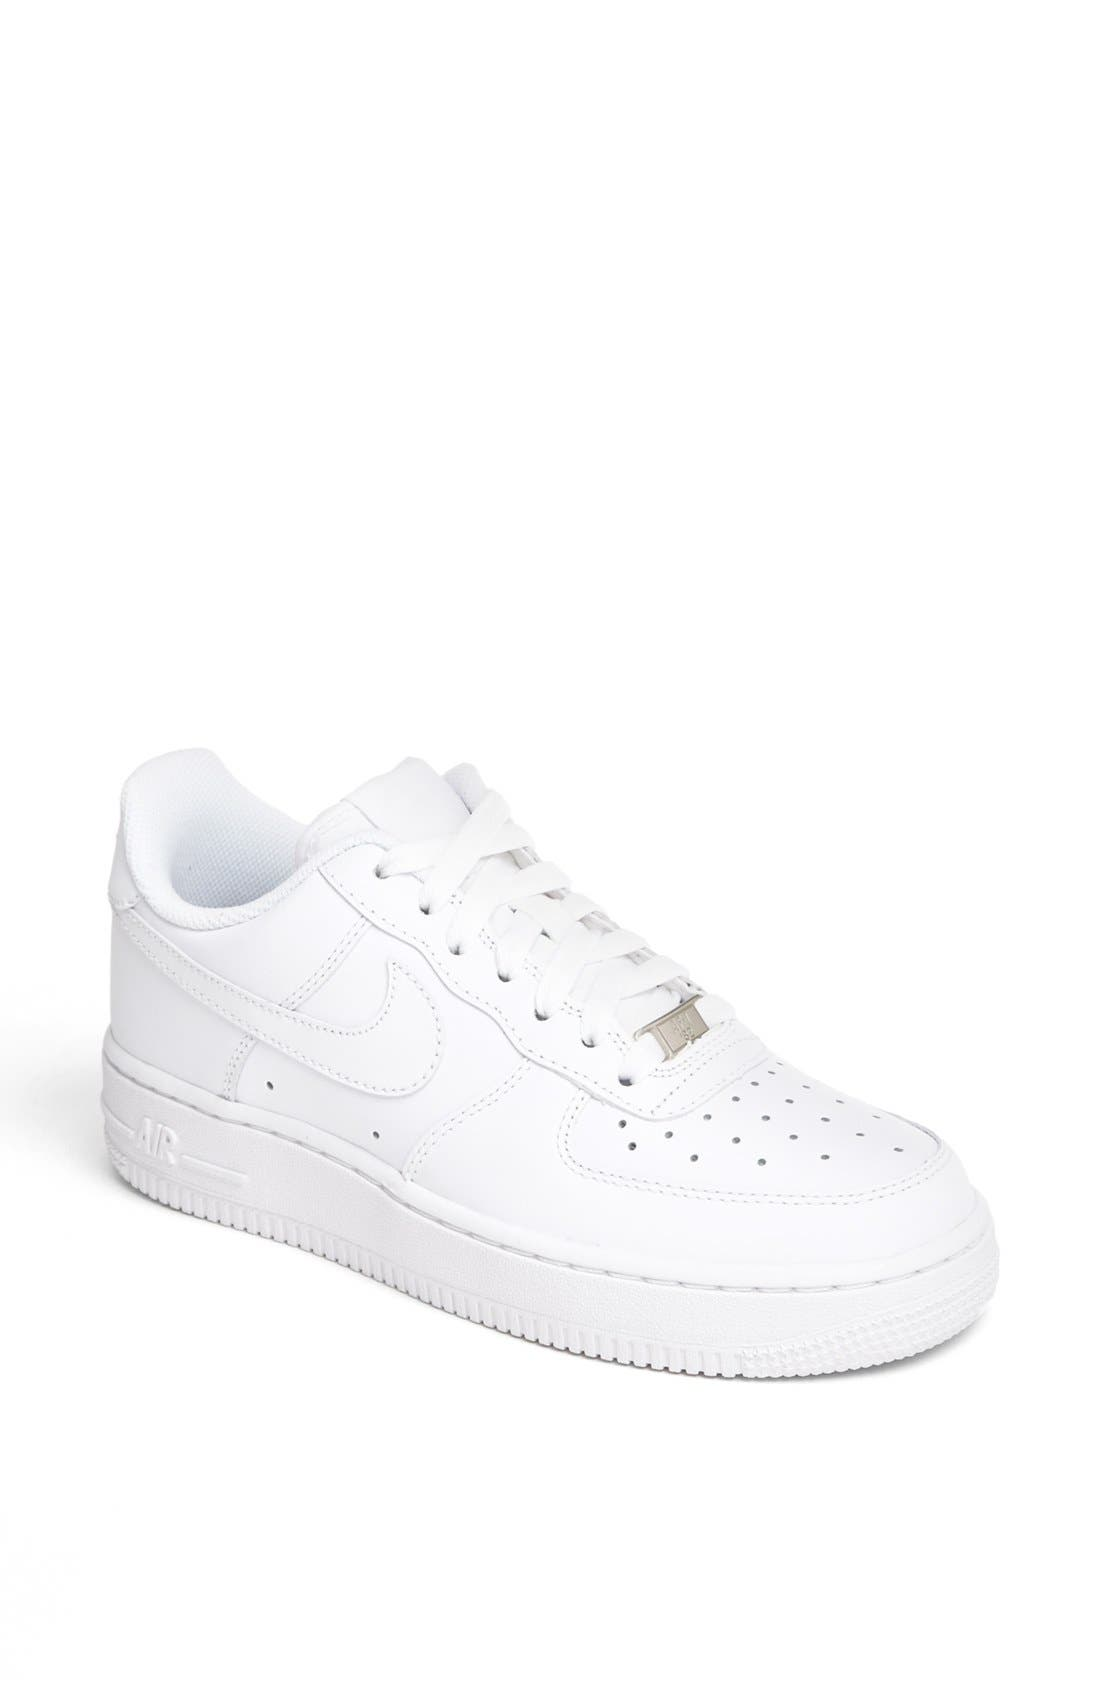 reputable site 2aed5 5554f Nike Women s Shoes and Sneakers   Nordstrom